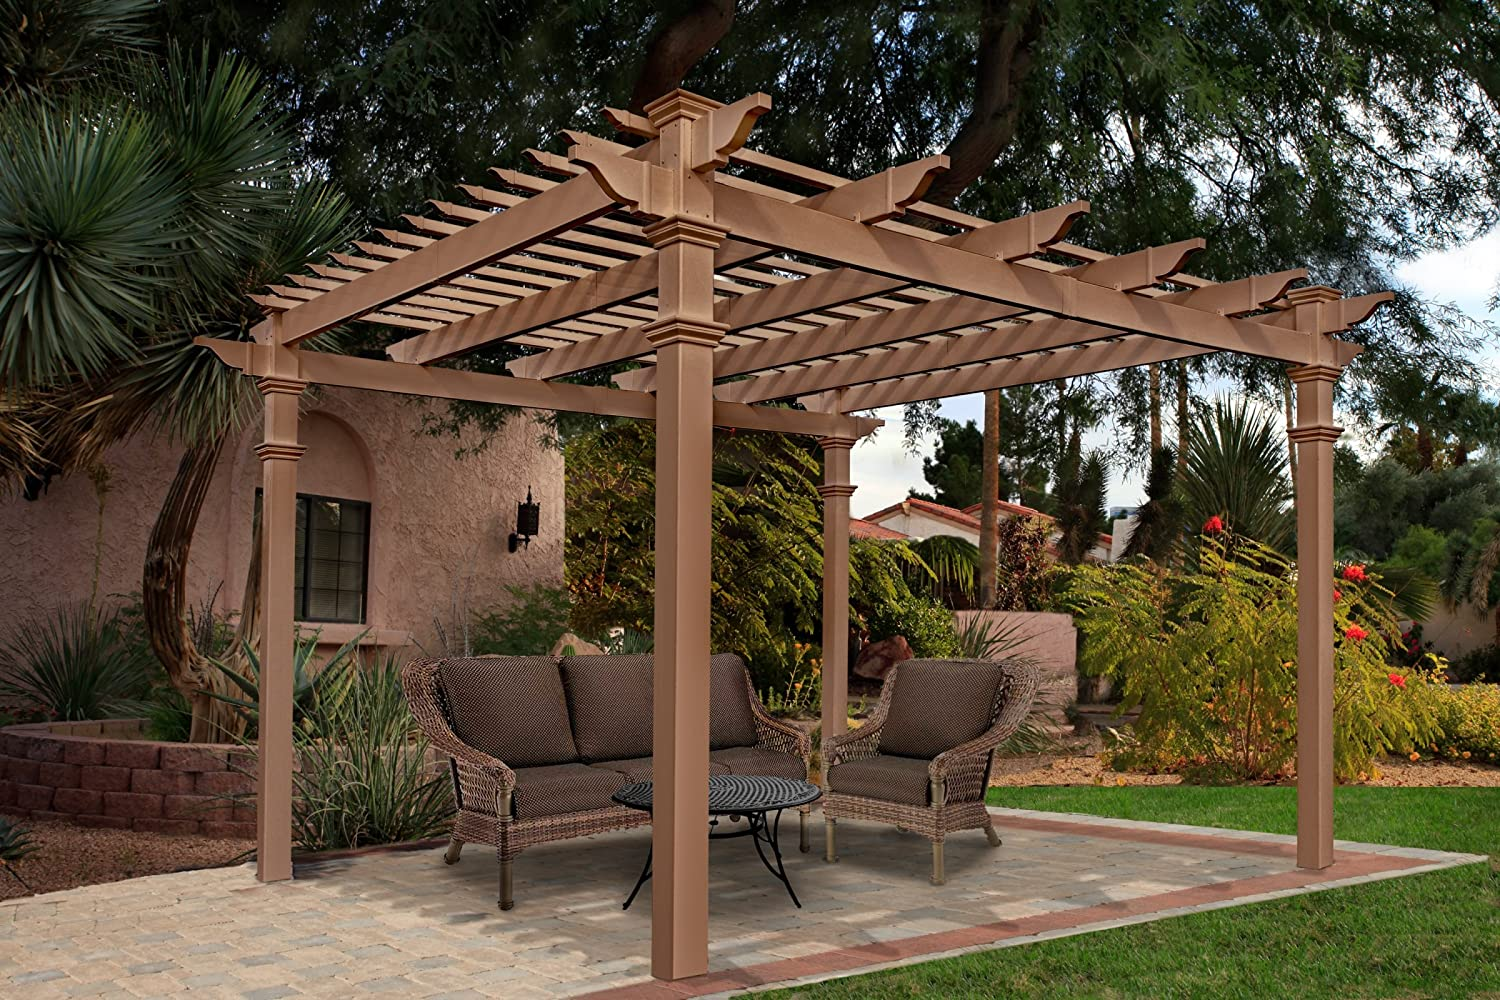 Pergolas Supply and Installation in Dubai and Abu Dhabi